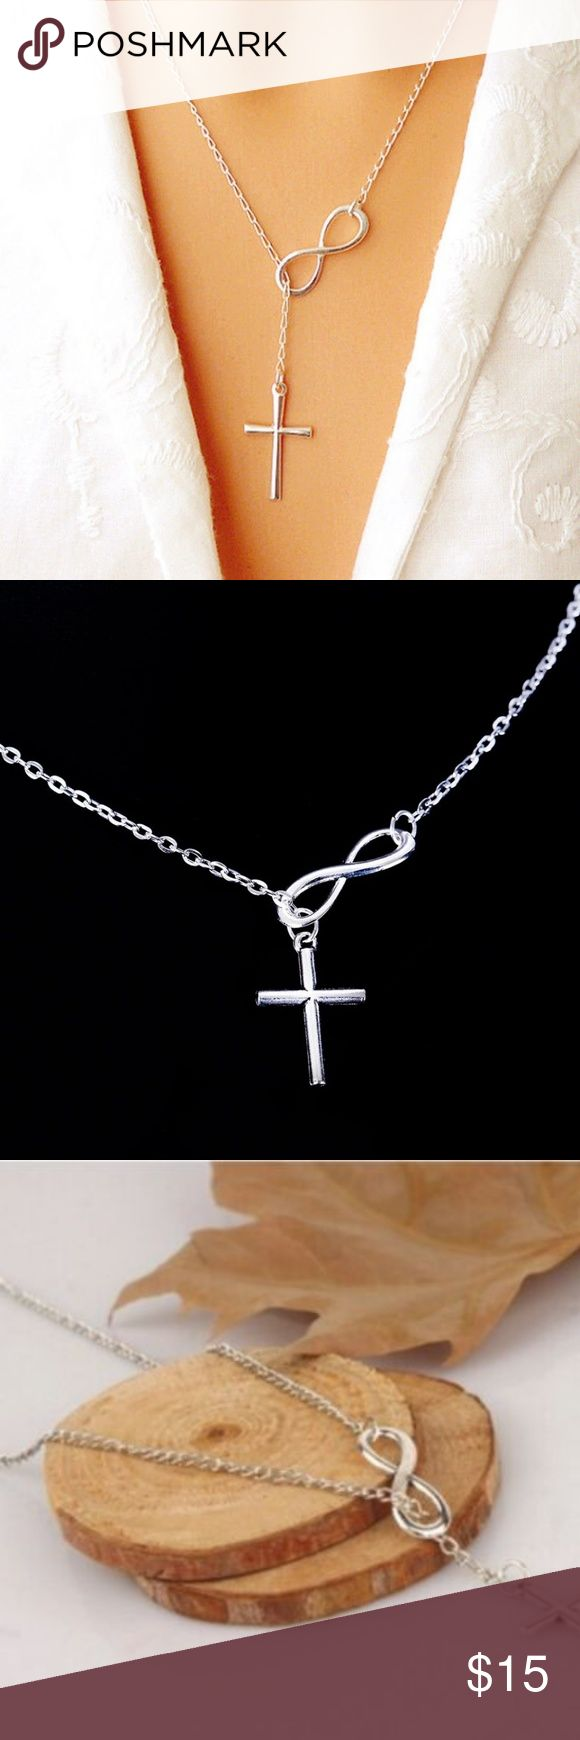 "Silver Plated Infinity Cross Necklace New in sealed manufacturer's packaging. 22 inch chain necklace. Cross and infinity pendant 1"". Jewelry Necklaces"